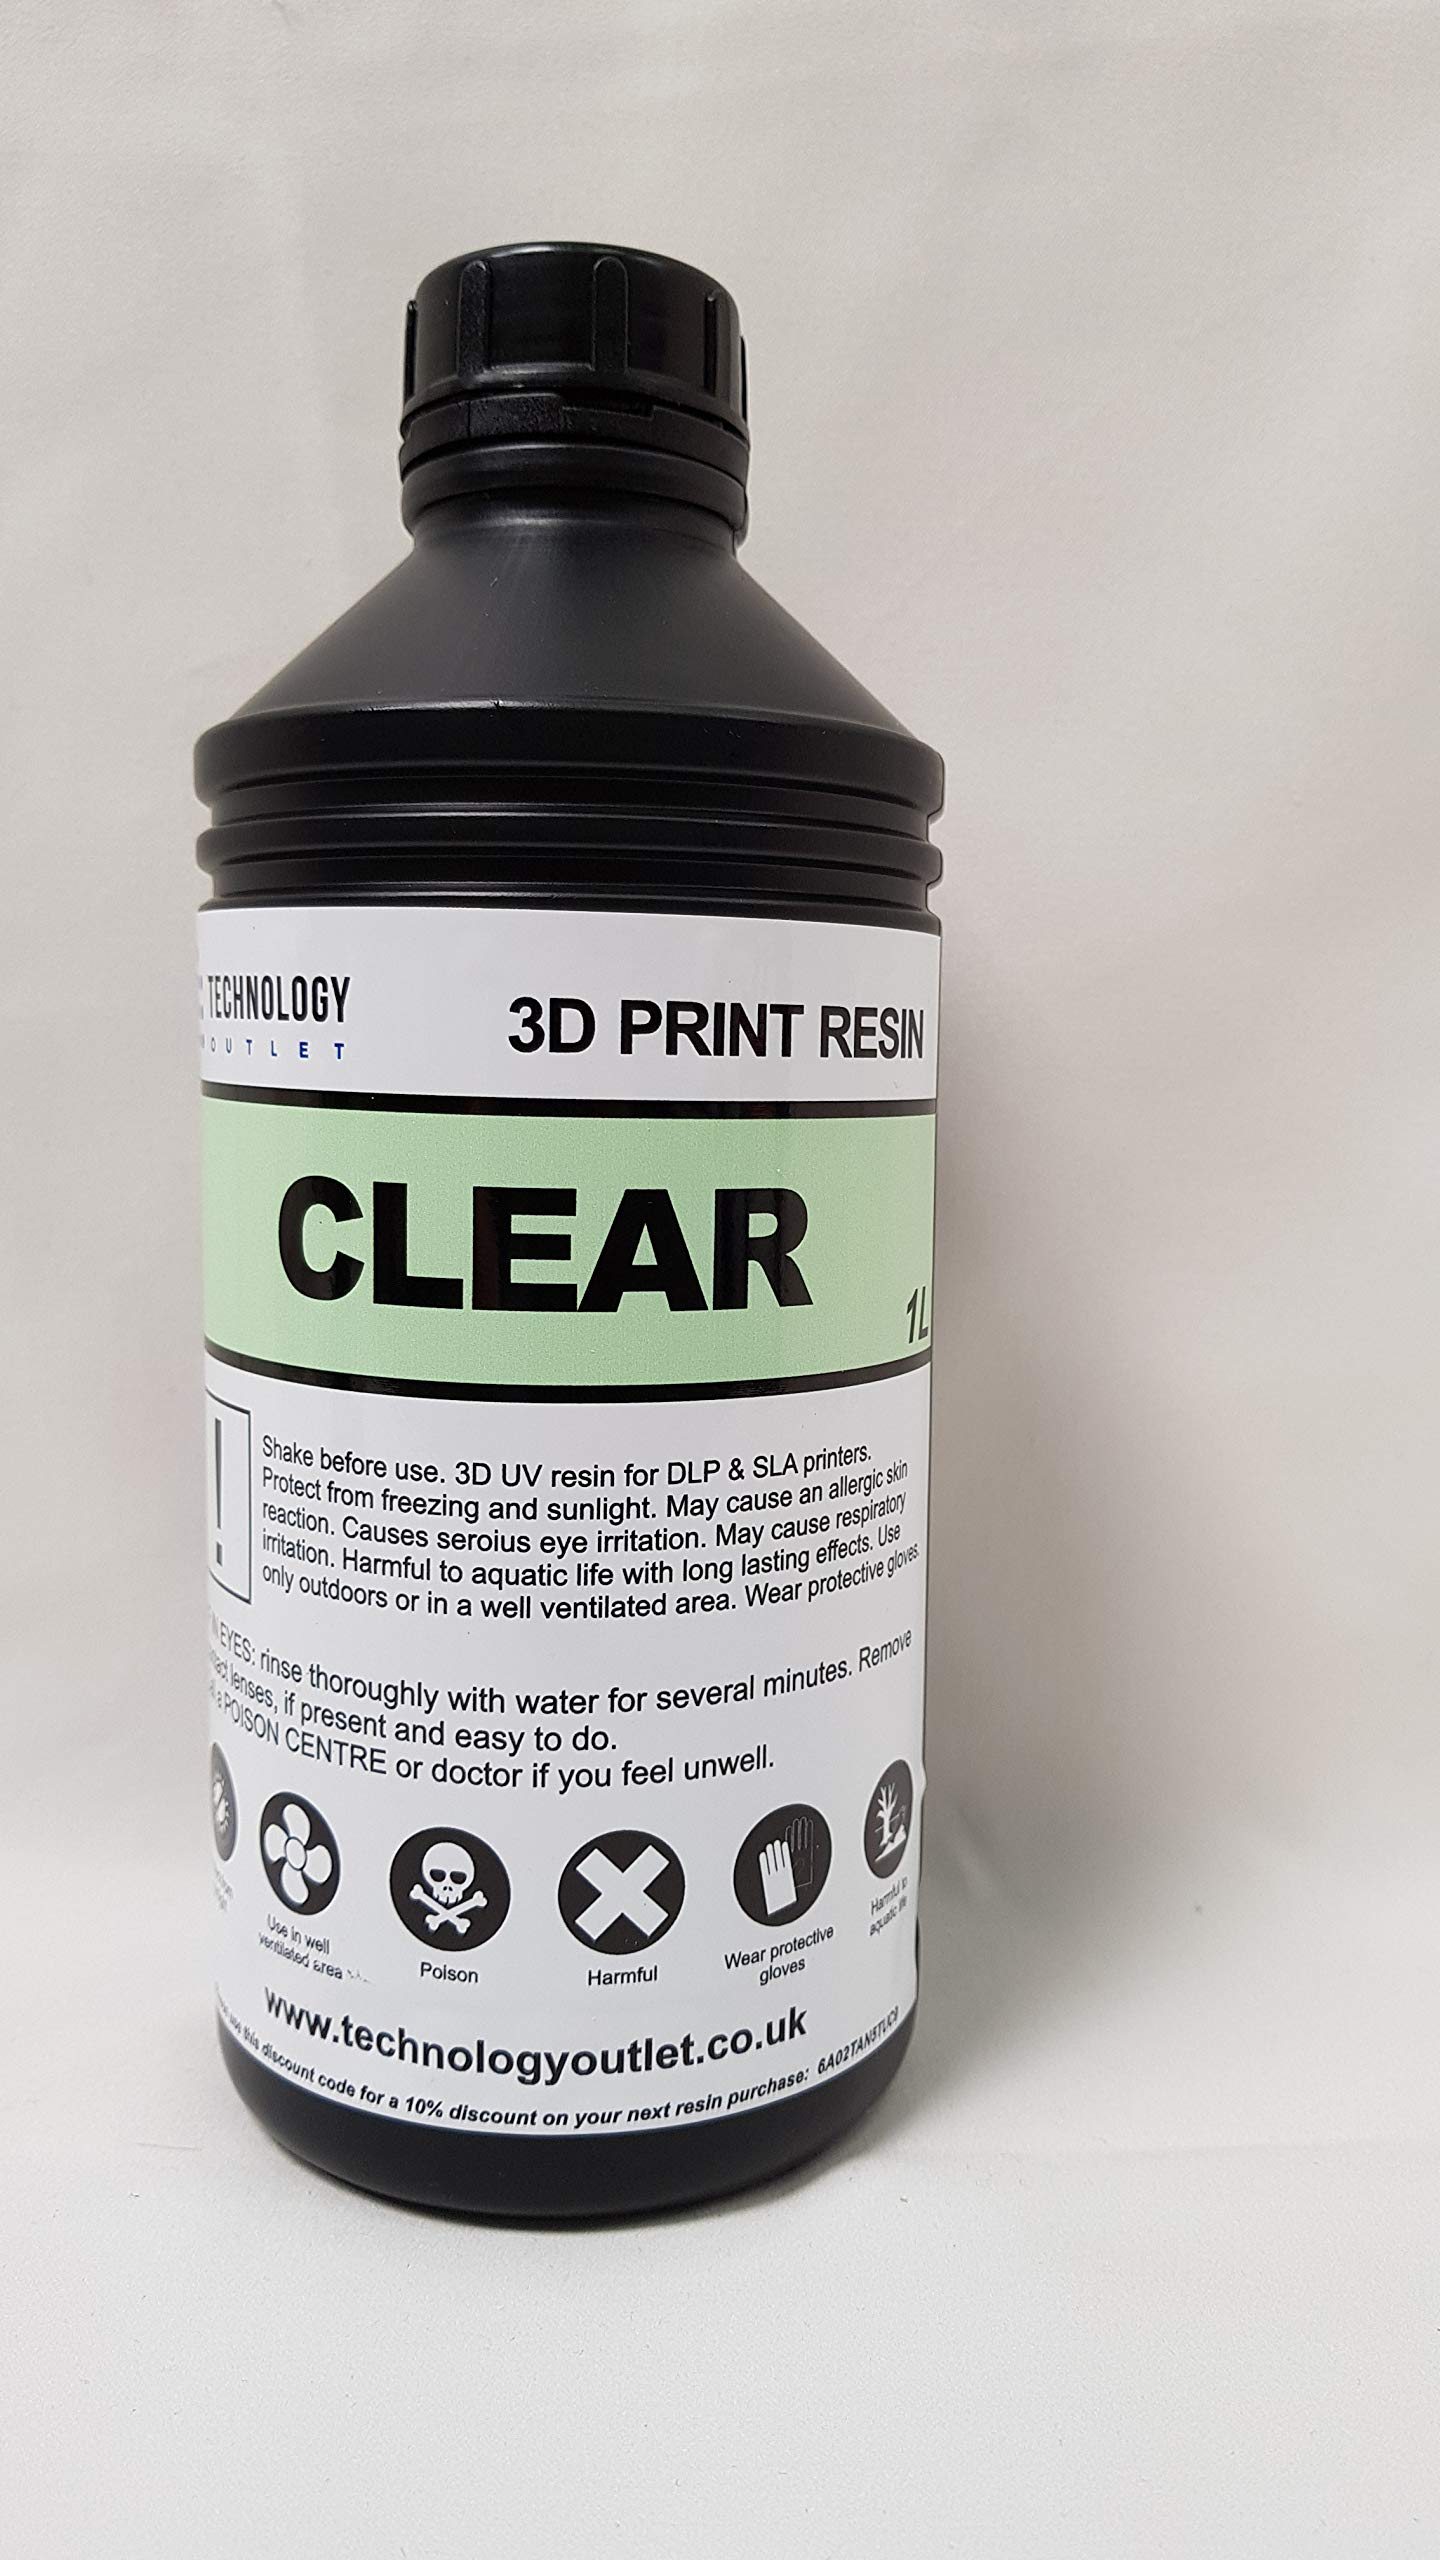 120mm with 1 Free technologyoutlet 1ltr Resin LD-001 70 Official Creality 3D LCD Printer Ultra Precision with 3.5 Smart Touch Color Screen Wifi Off-Line Printing Size 120